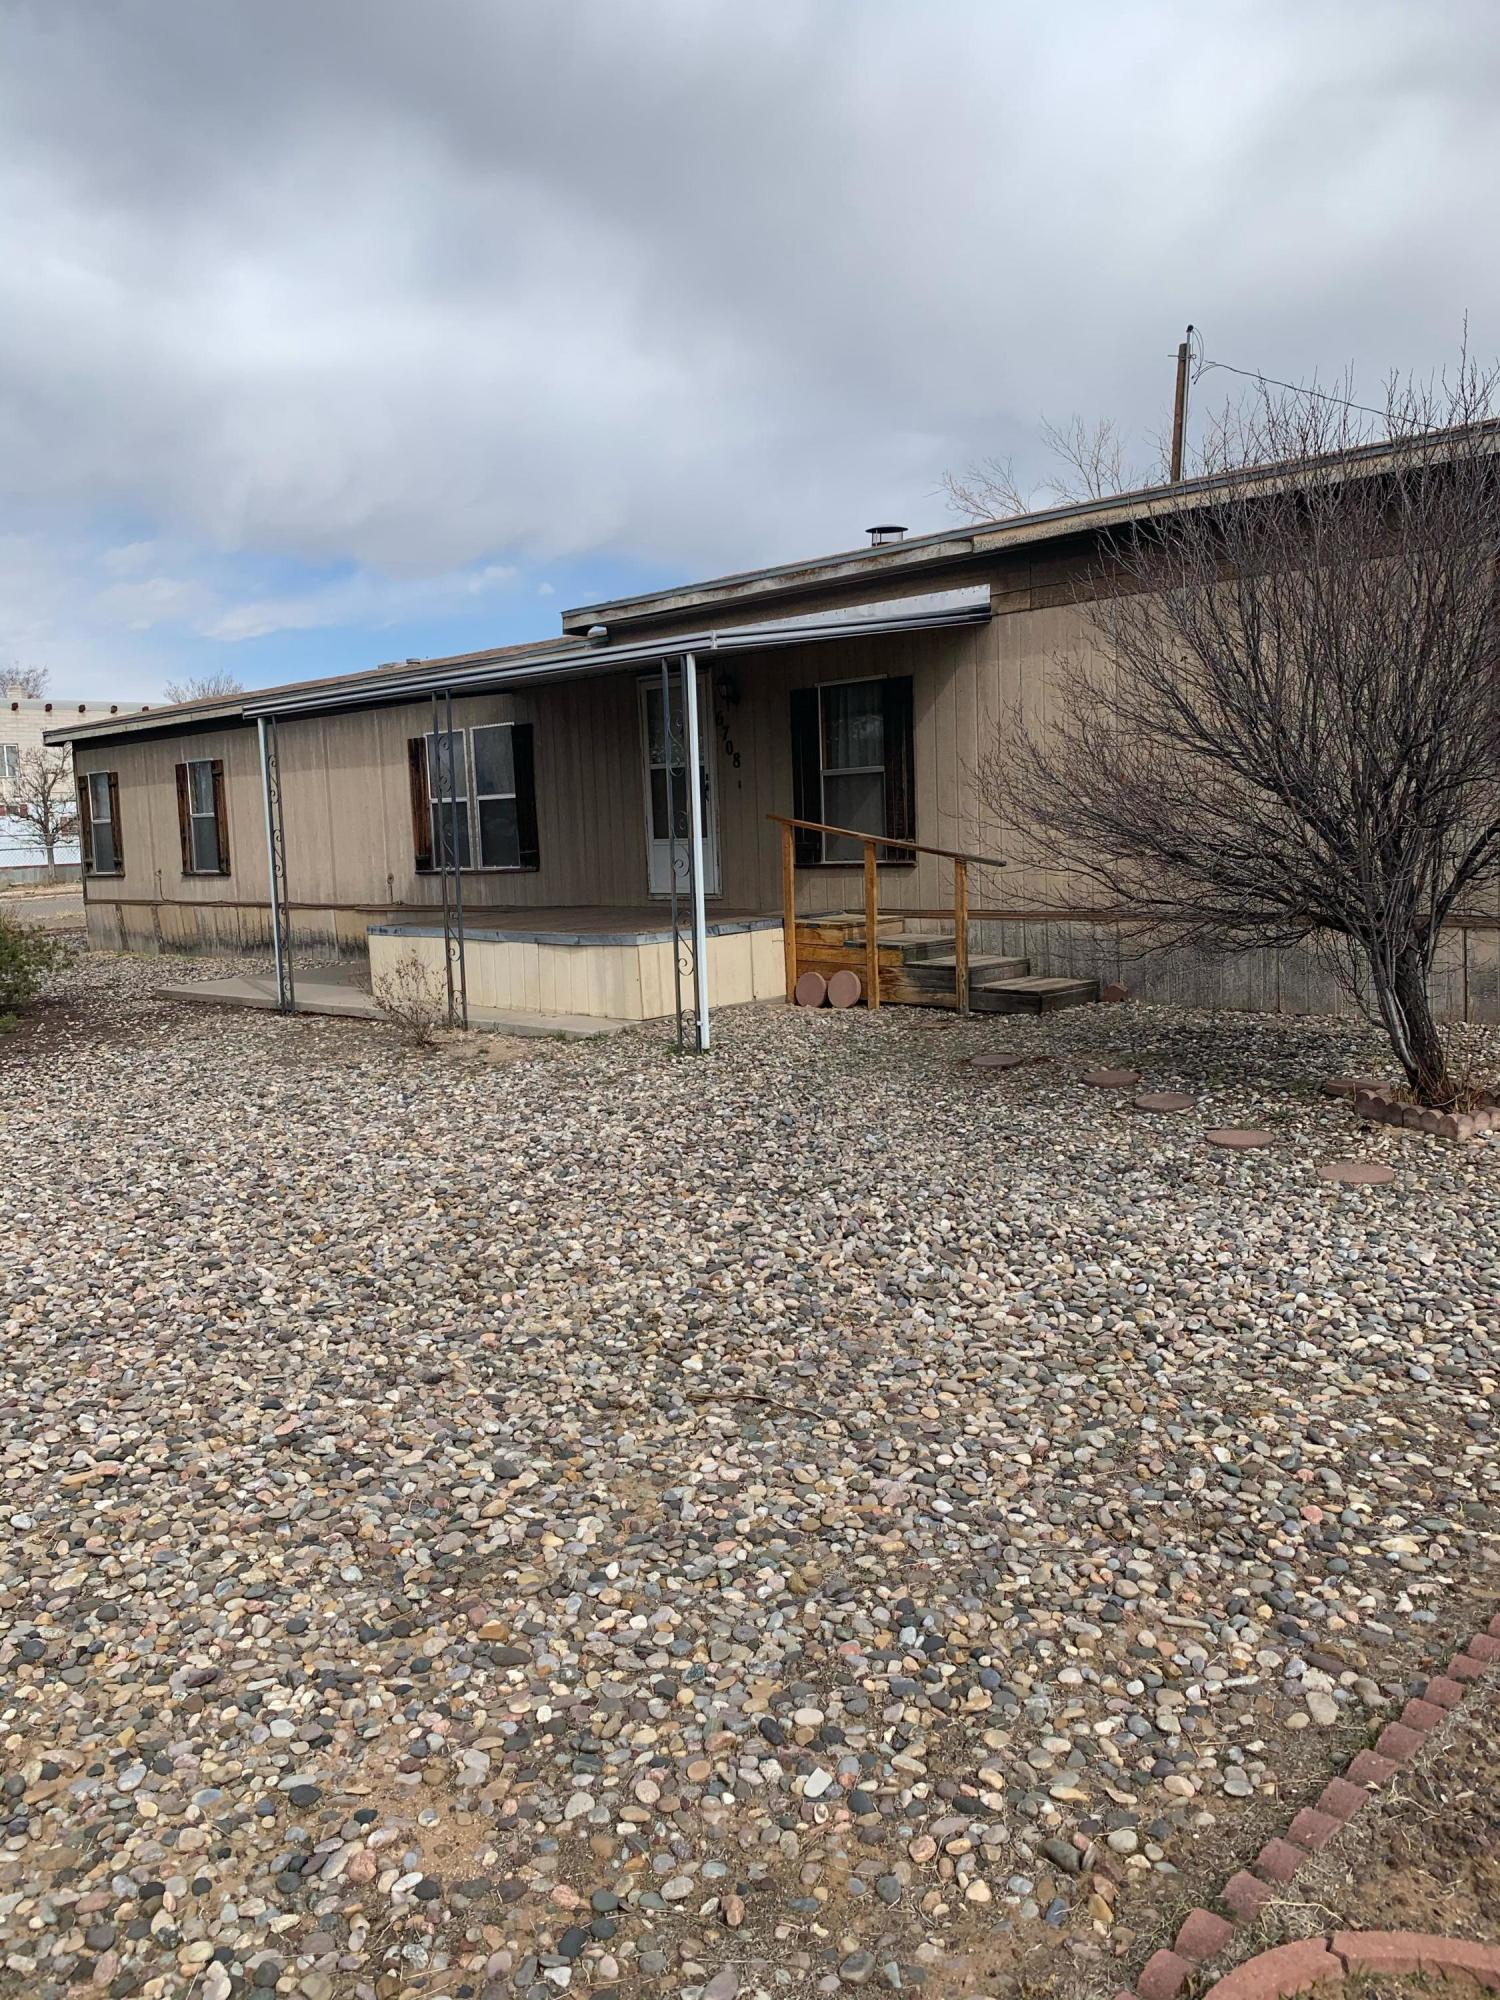 North Valley setting on 1/2 acre. Fenced yard, newer heating and refrigerated air. Property needs some work but an excellent opportunity. Please do not use back door or go onto back porch. The porch is not very sturdy.  Tankless H/W heater.